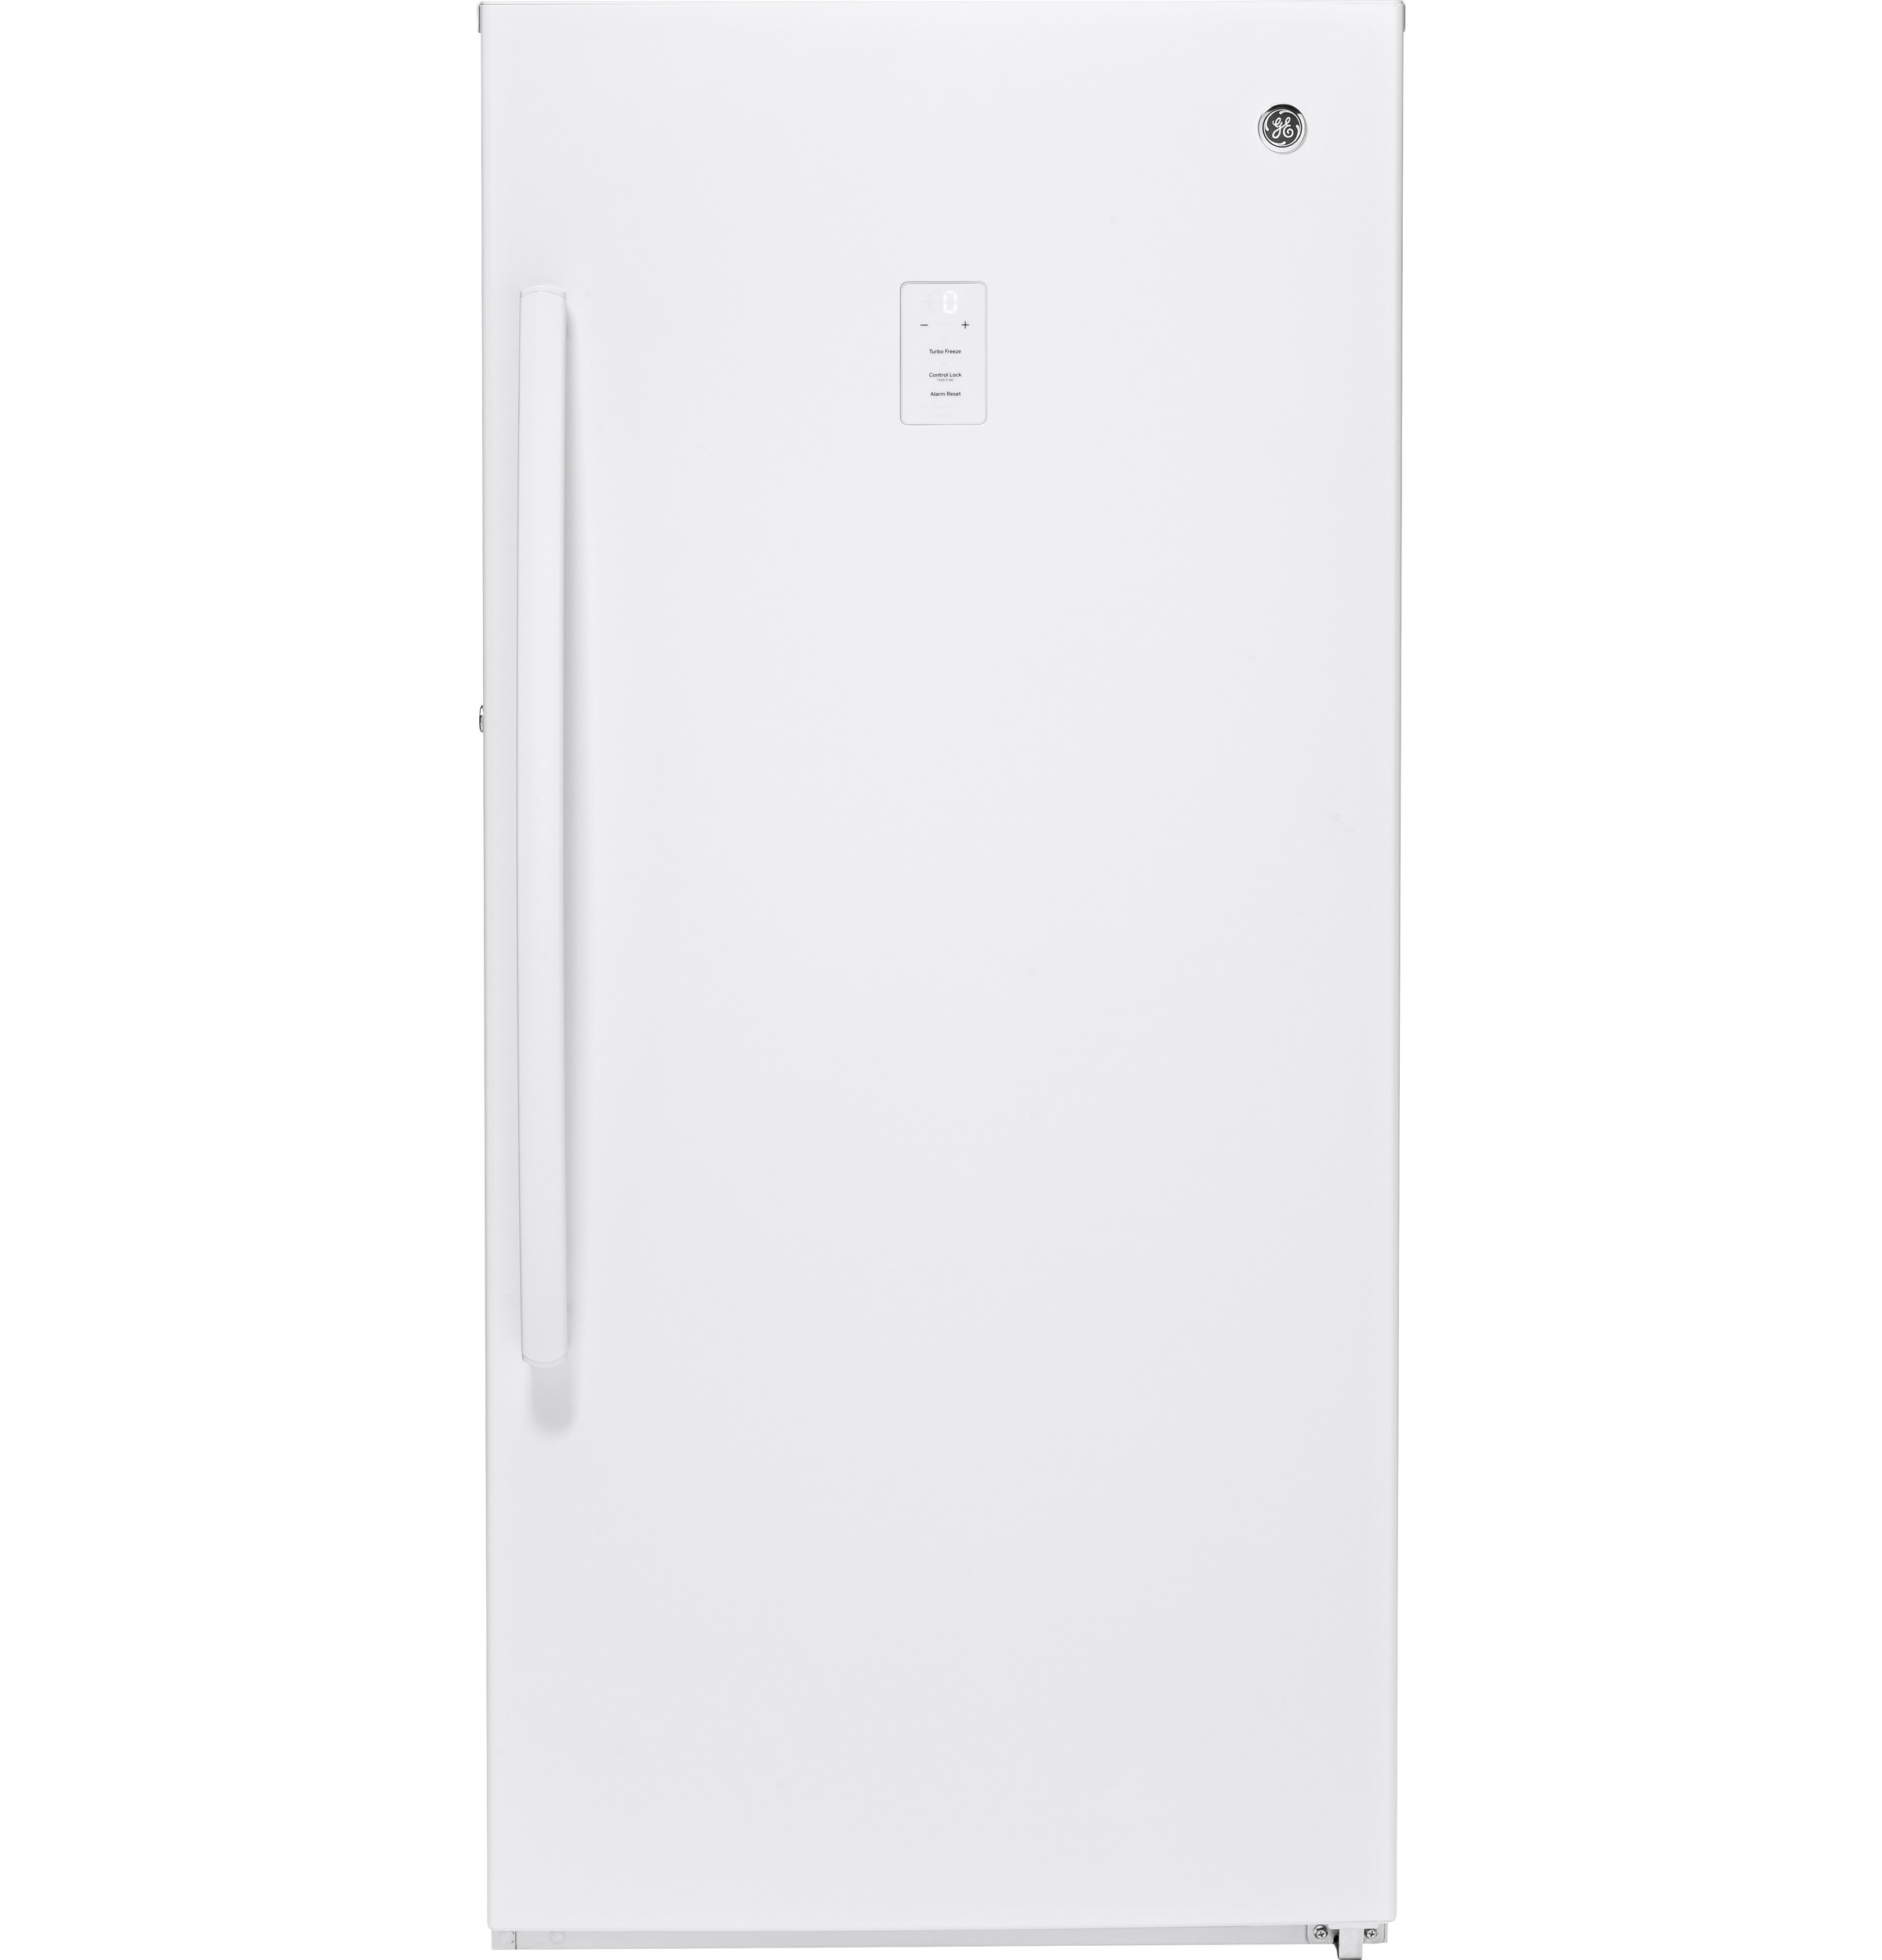 Model: FUF14SMRWW | GE GE® 14.1 Cu. Ft. Frost-Free Upright Freezer